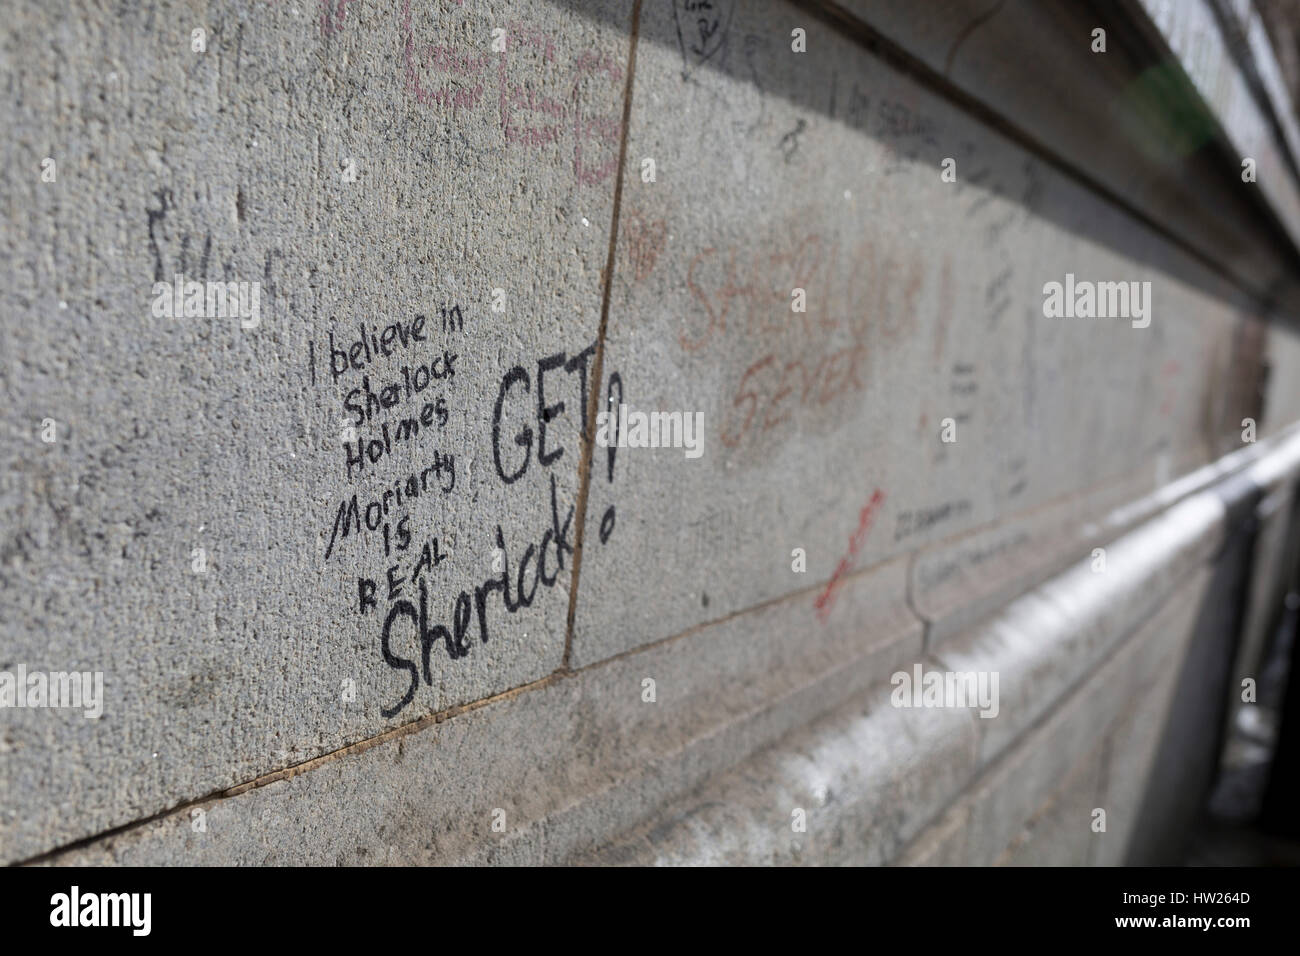 Graffiti scrawled on the exterior of Barts Hospital, by fans of the popular TV show Sherlock starring Benedict Cumberbatch - Stock Image